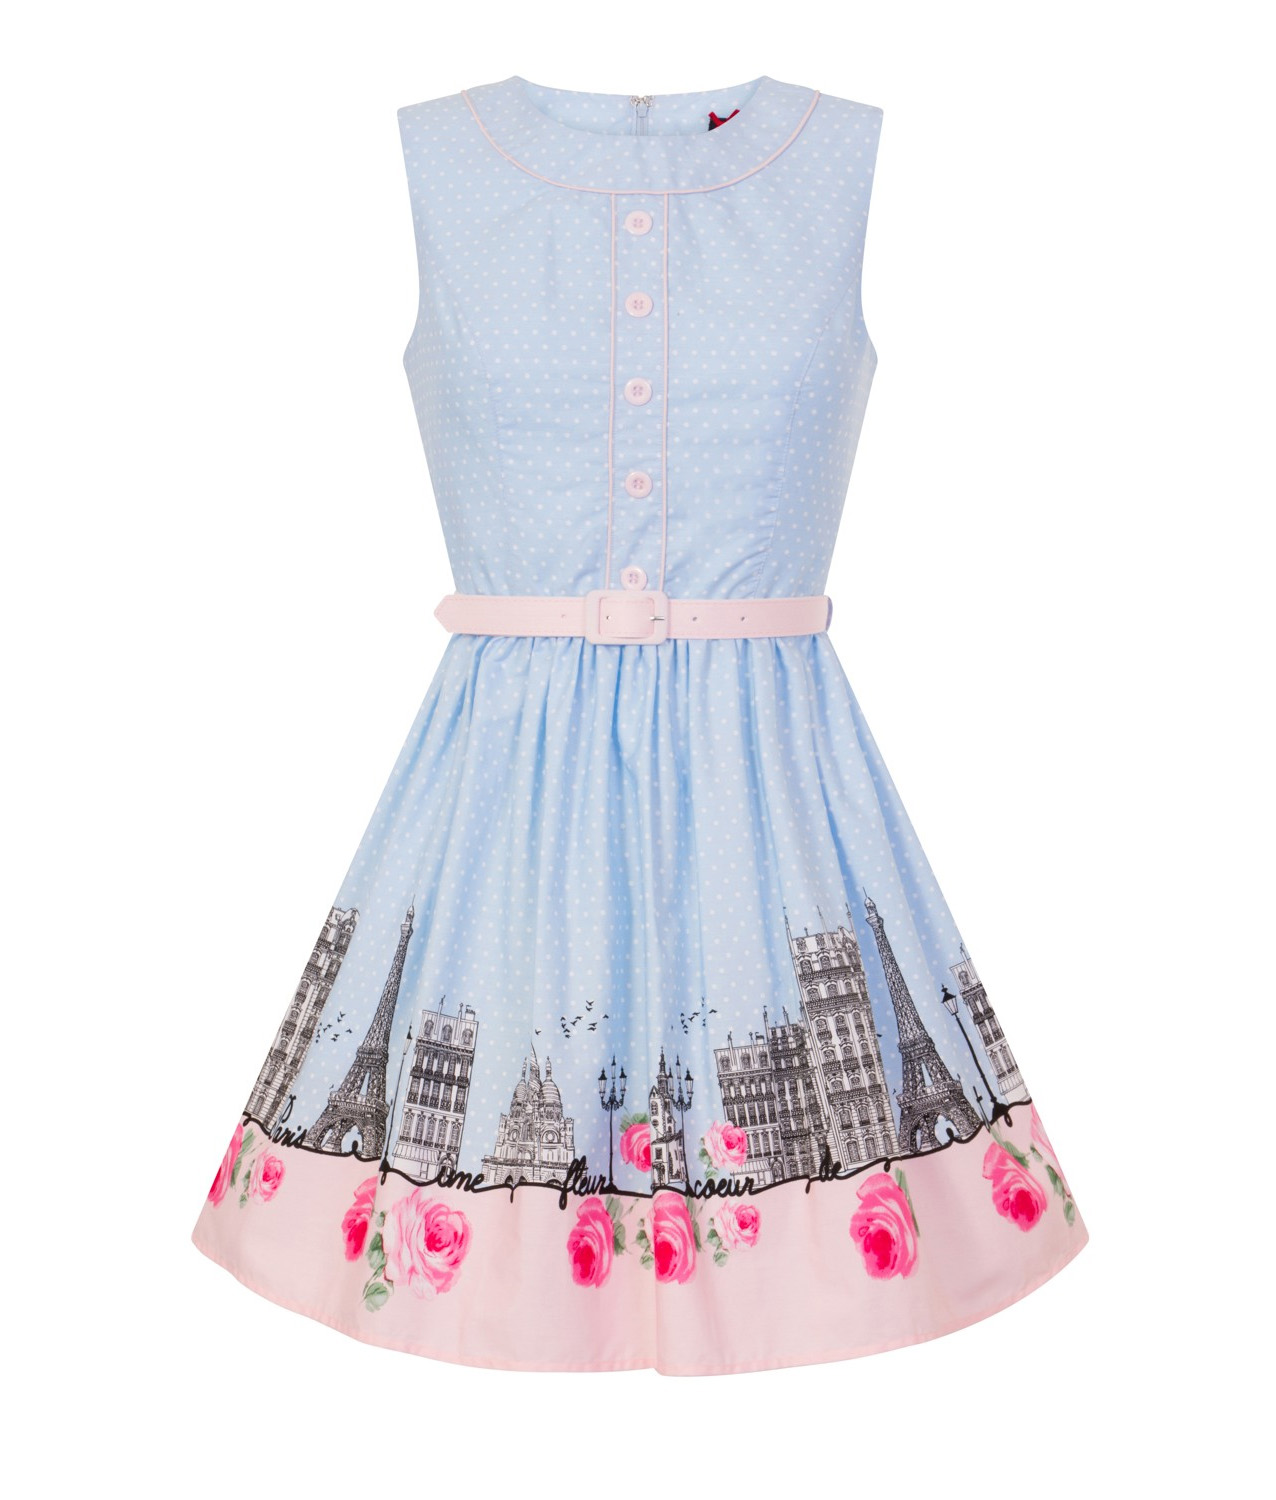 Hell-Bunny-50s-Vintage-Blue-Polka-Dot-PANAME-Mini-Dress-Paris-All-Sizes thumbnail 47